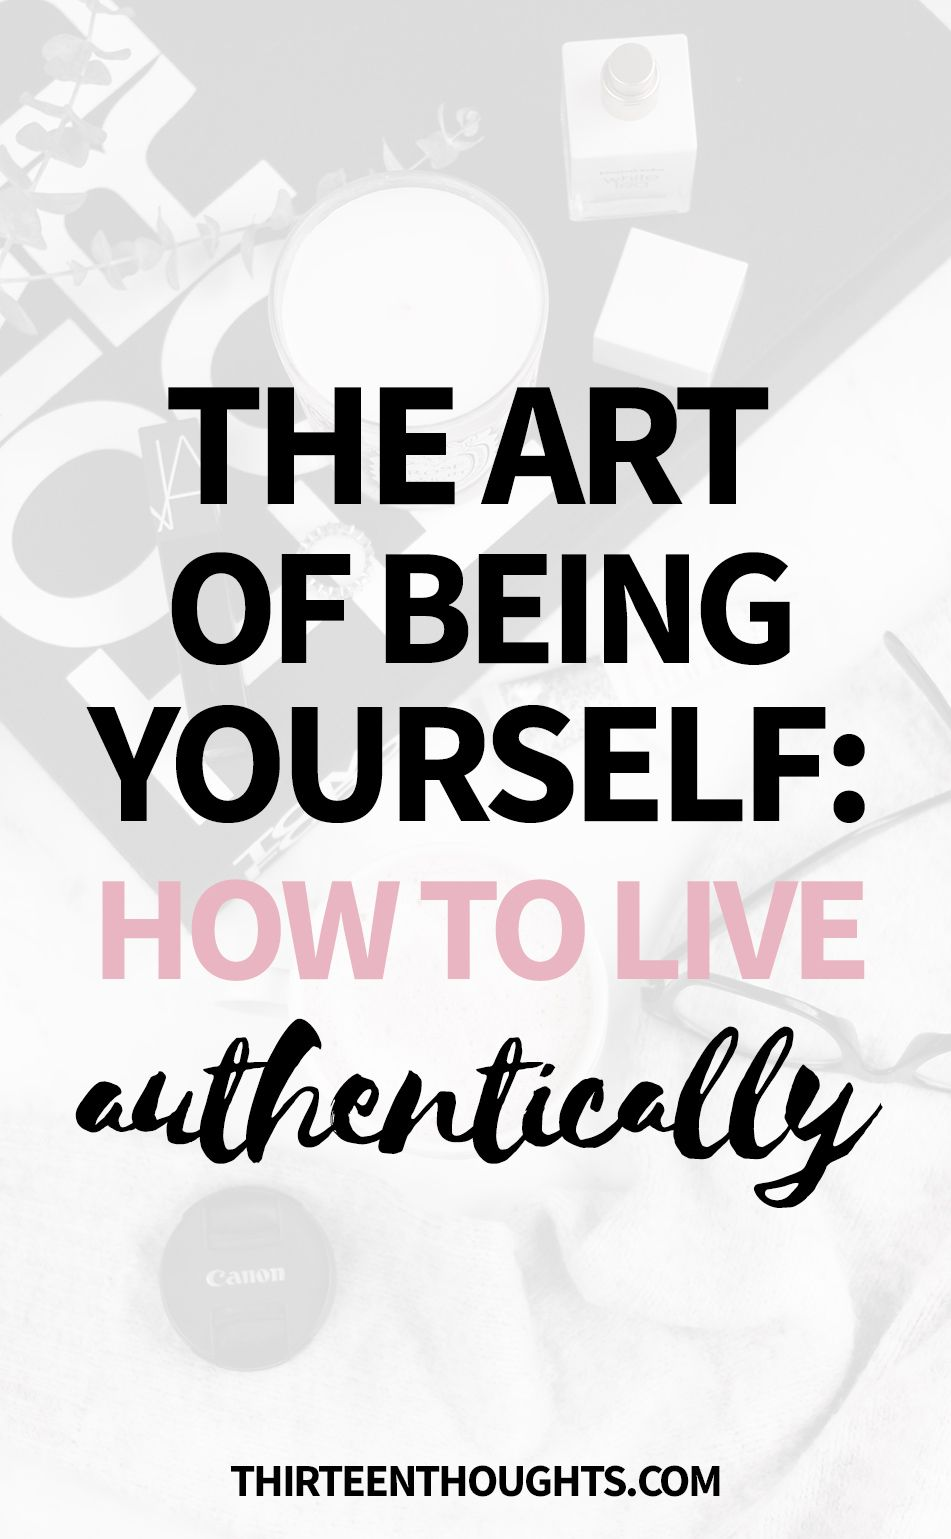 The Art of Being Yourself: Live Authentically #life #selfgrowth #lifestyle #personalgrowth #wellness #lbloggers #beauthentic #beyourself #love #selfcare #goals #growth #success via @Paula13t